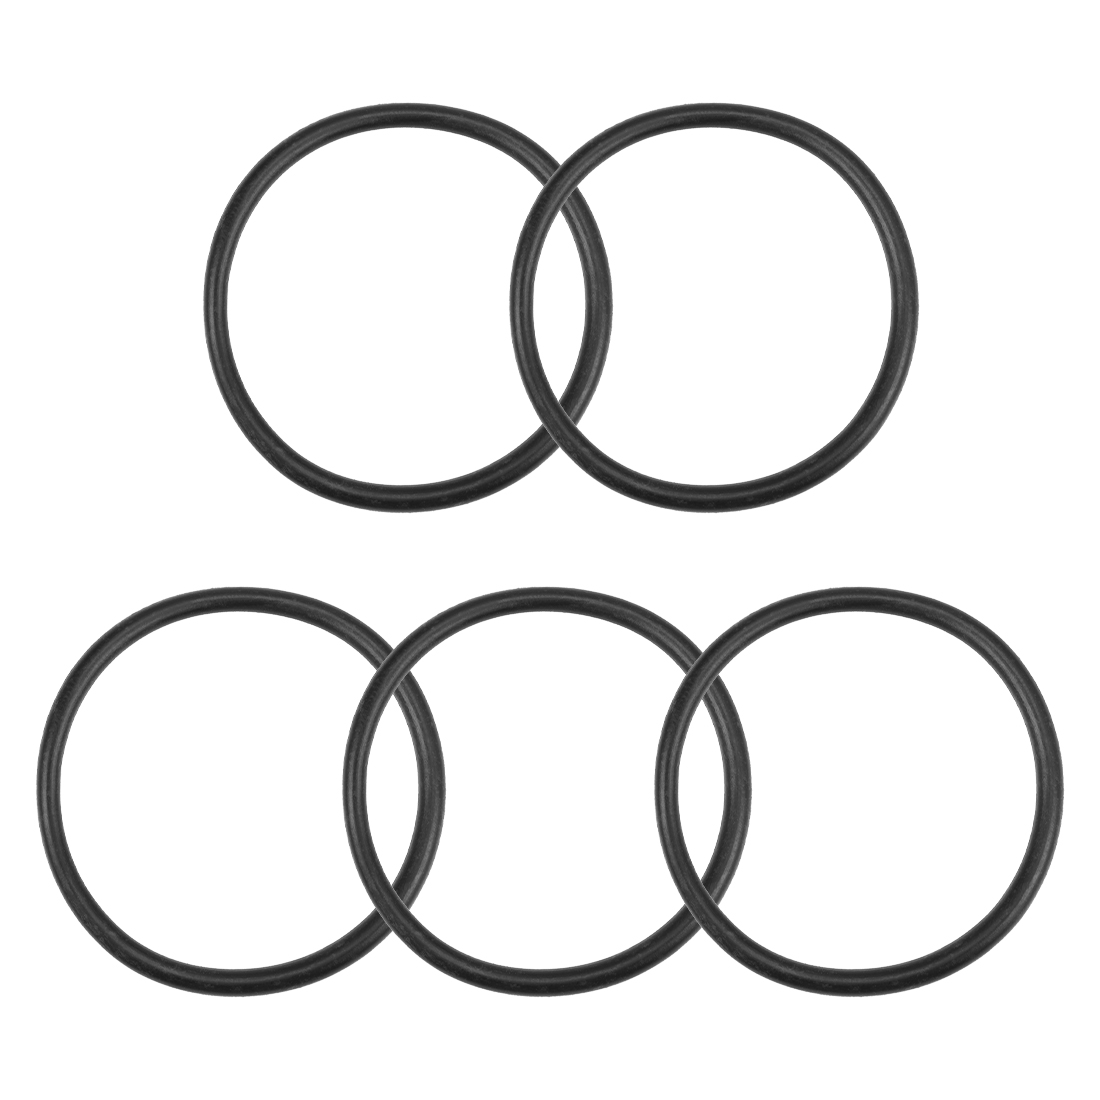 O-Rings Nitrile Rubber 36.5mm x 41.8mm x 2.65mm Round Seal Gasket 5 Pcs